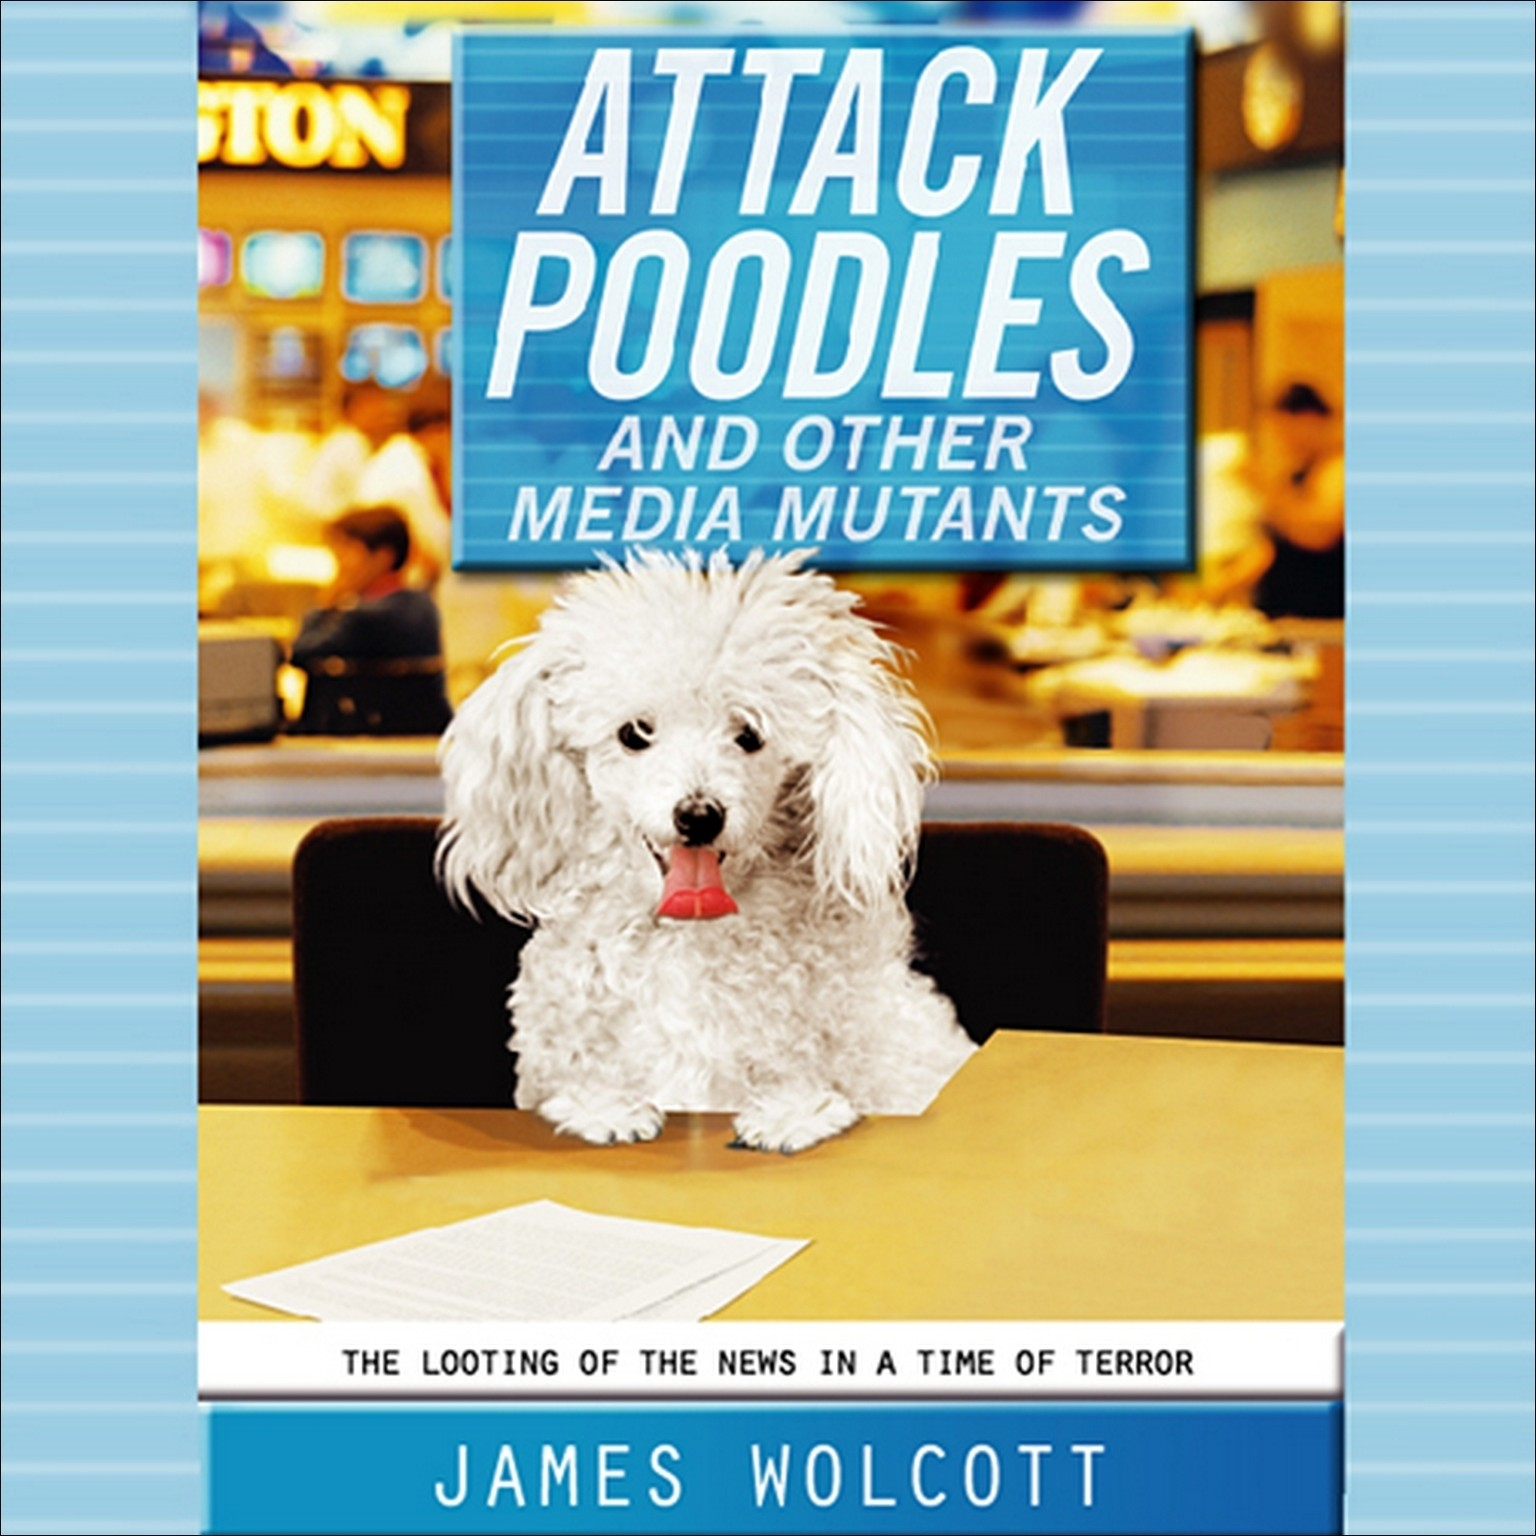 Printable Attack Poodles and Other Media Mutants: The Looting of News in a Time of Terror Audiobook Cover Art